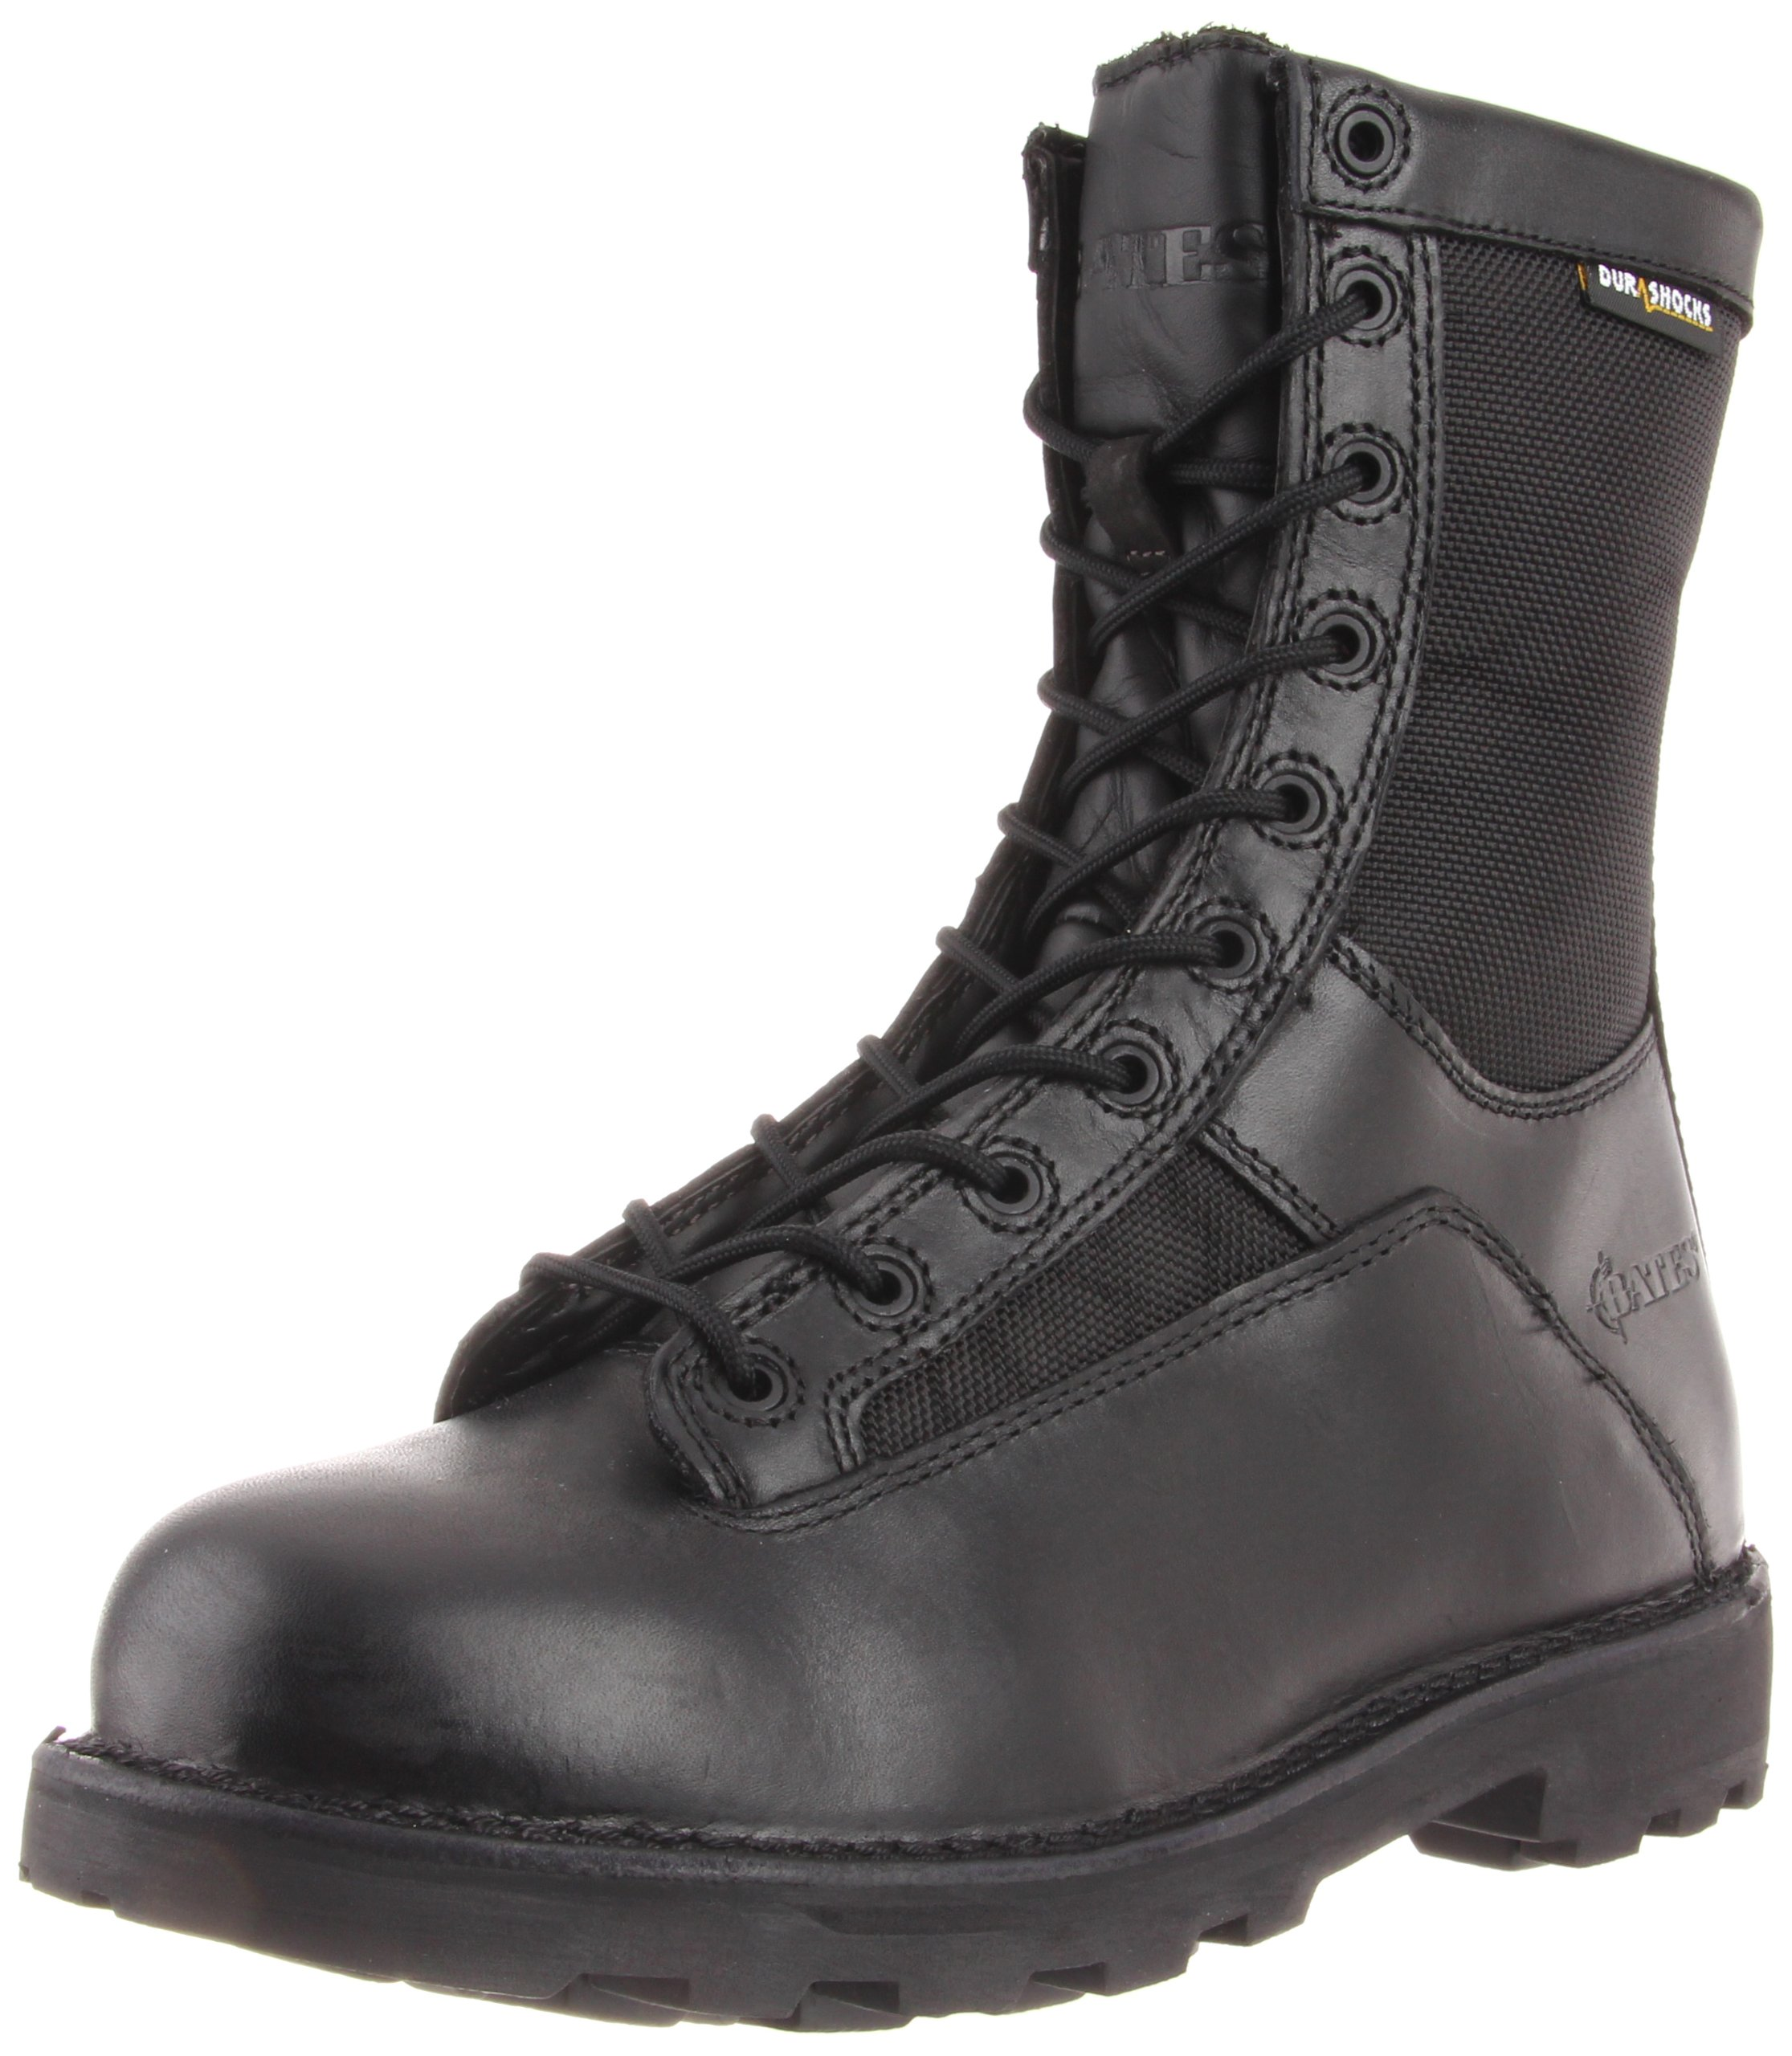 Bates Men's 8 Inches Durashocks Lace-to-Toe Work Boot, Black, 11 EW US